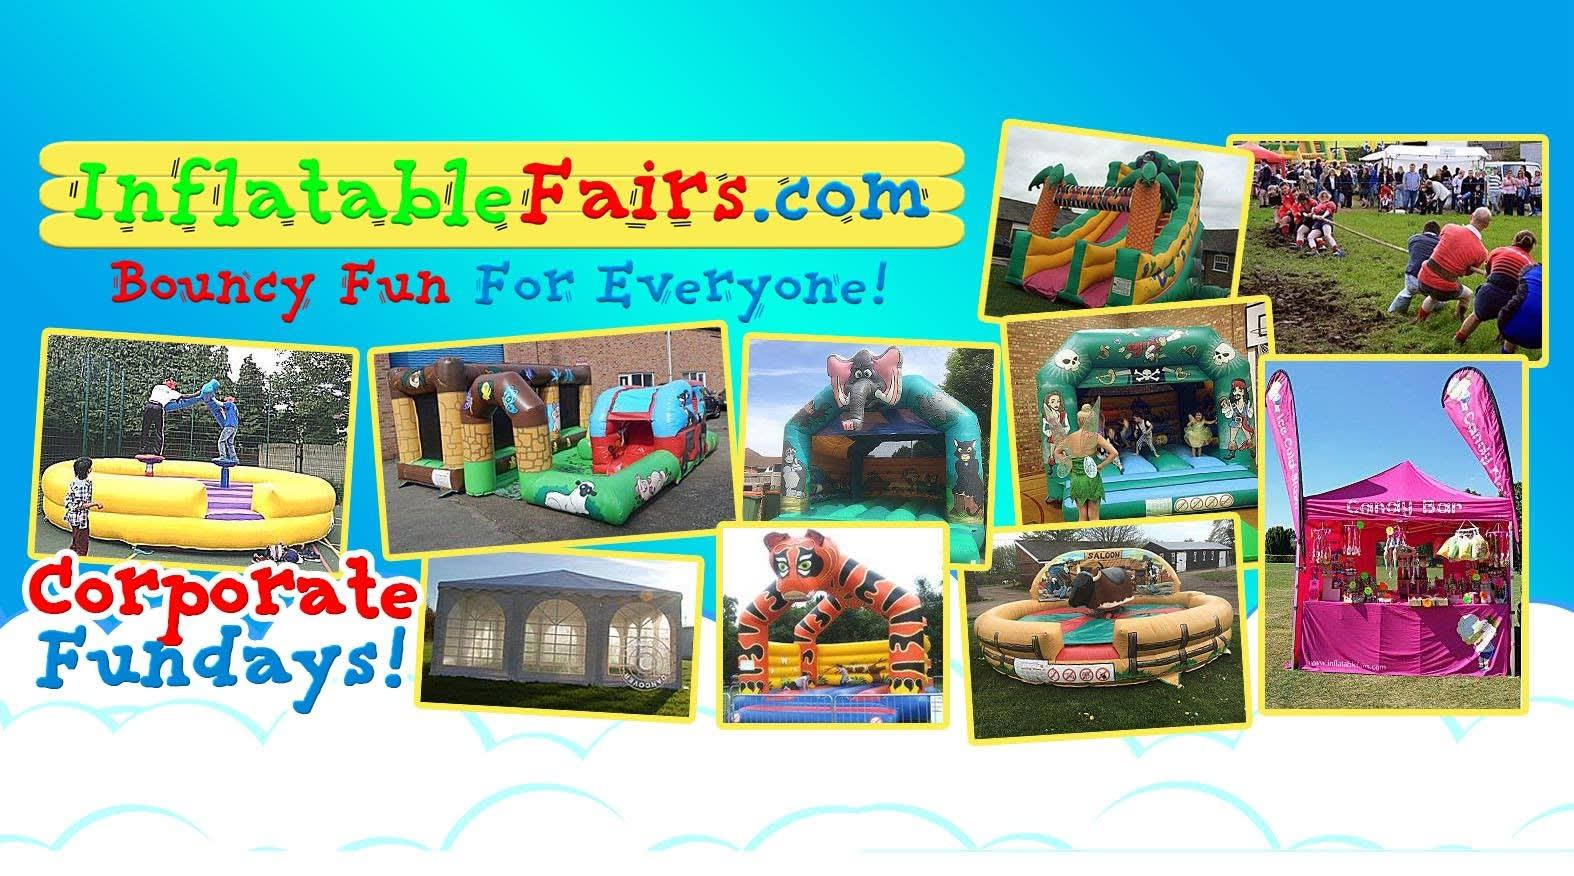 Inflatable Fairs